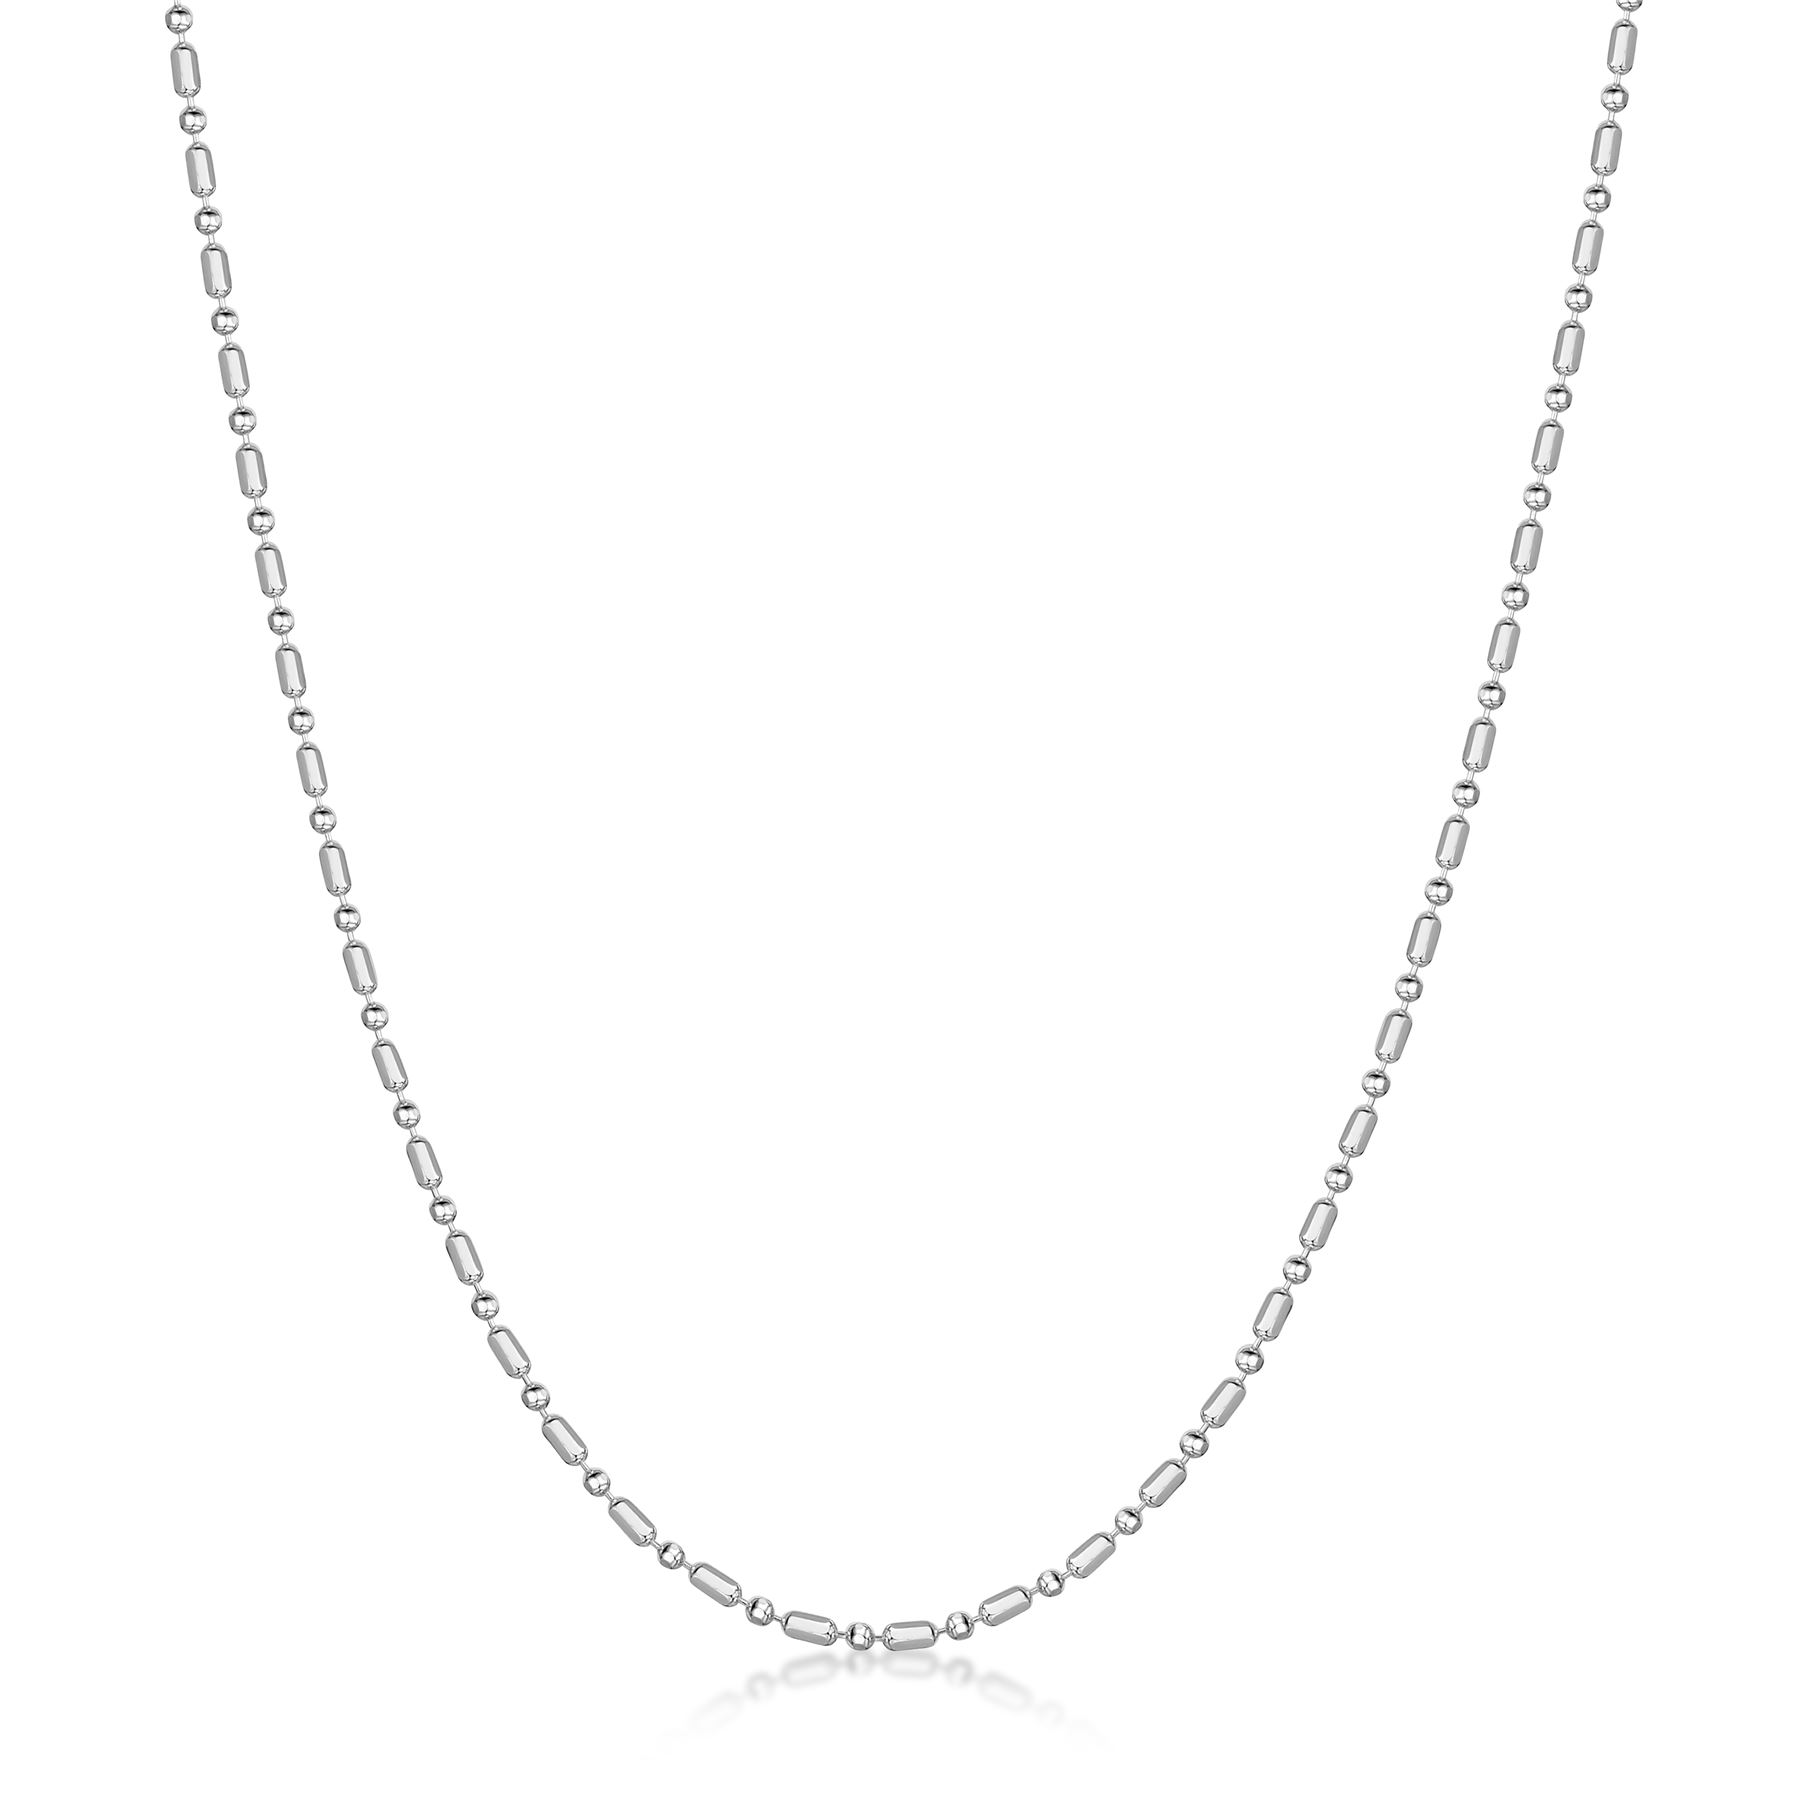 Amberta-Jewelry-Genuine-925-Sterling-Silver-Italian-Bead-Necklace-Ball-Chain thumbnail 7